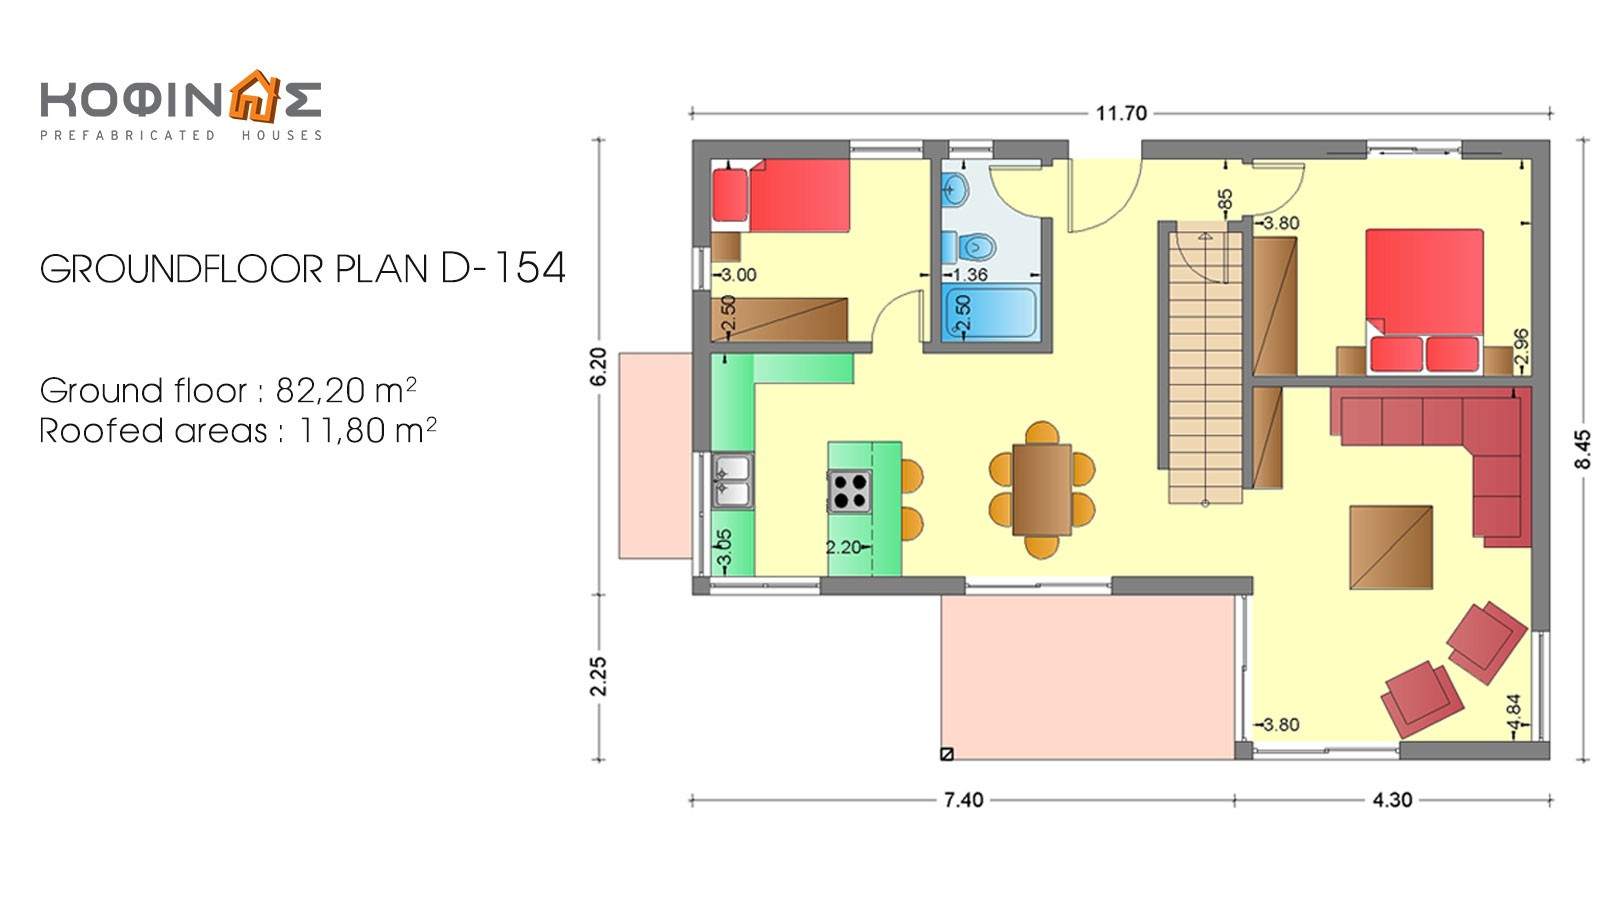 2-story house D-154, total surface of 154,70 m²